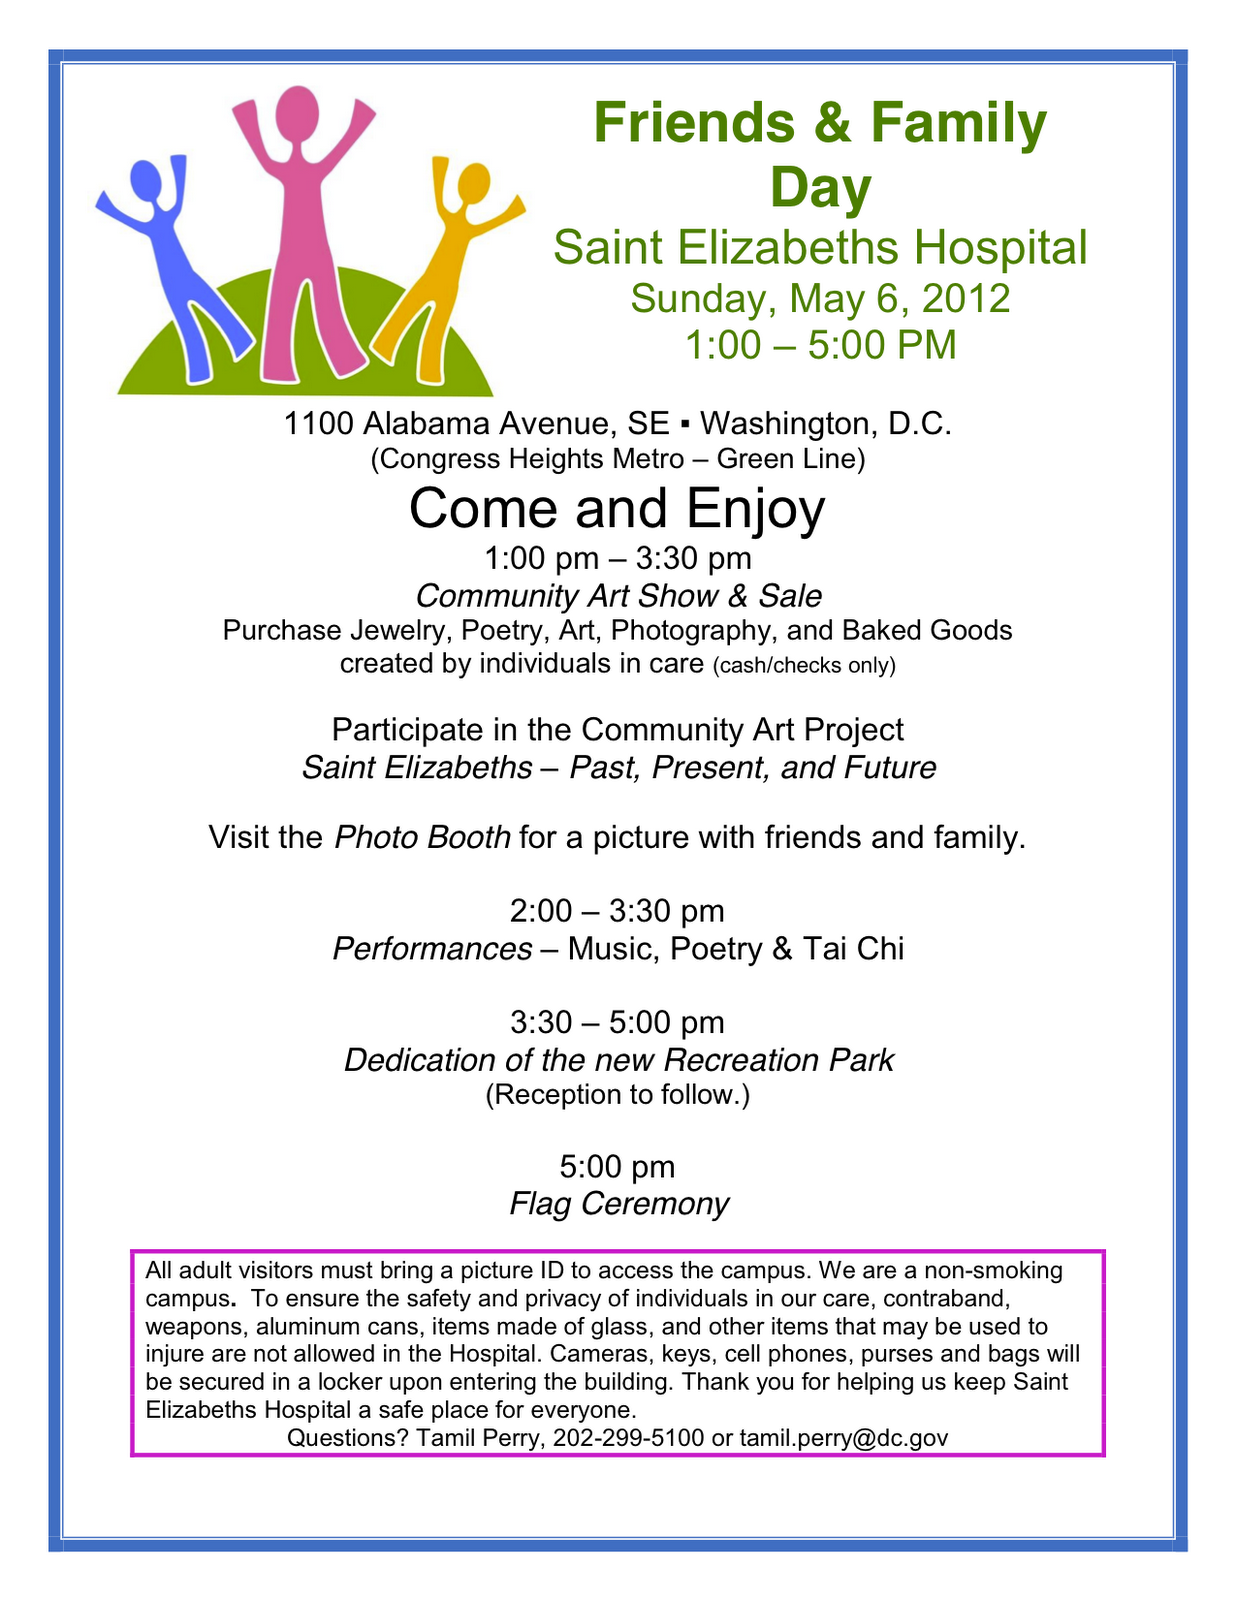 Family day invitation template on the rise may 6 friends family day saint elizabeths hospital stopboris Images